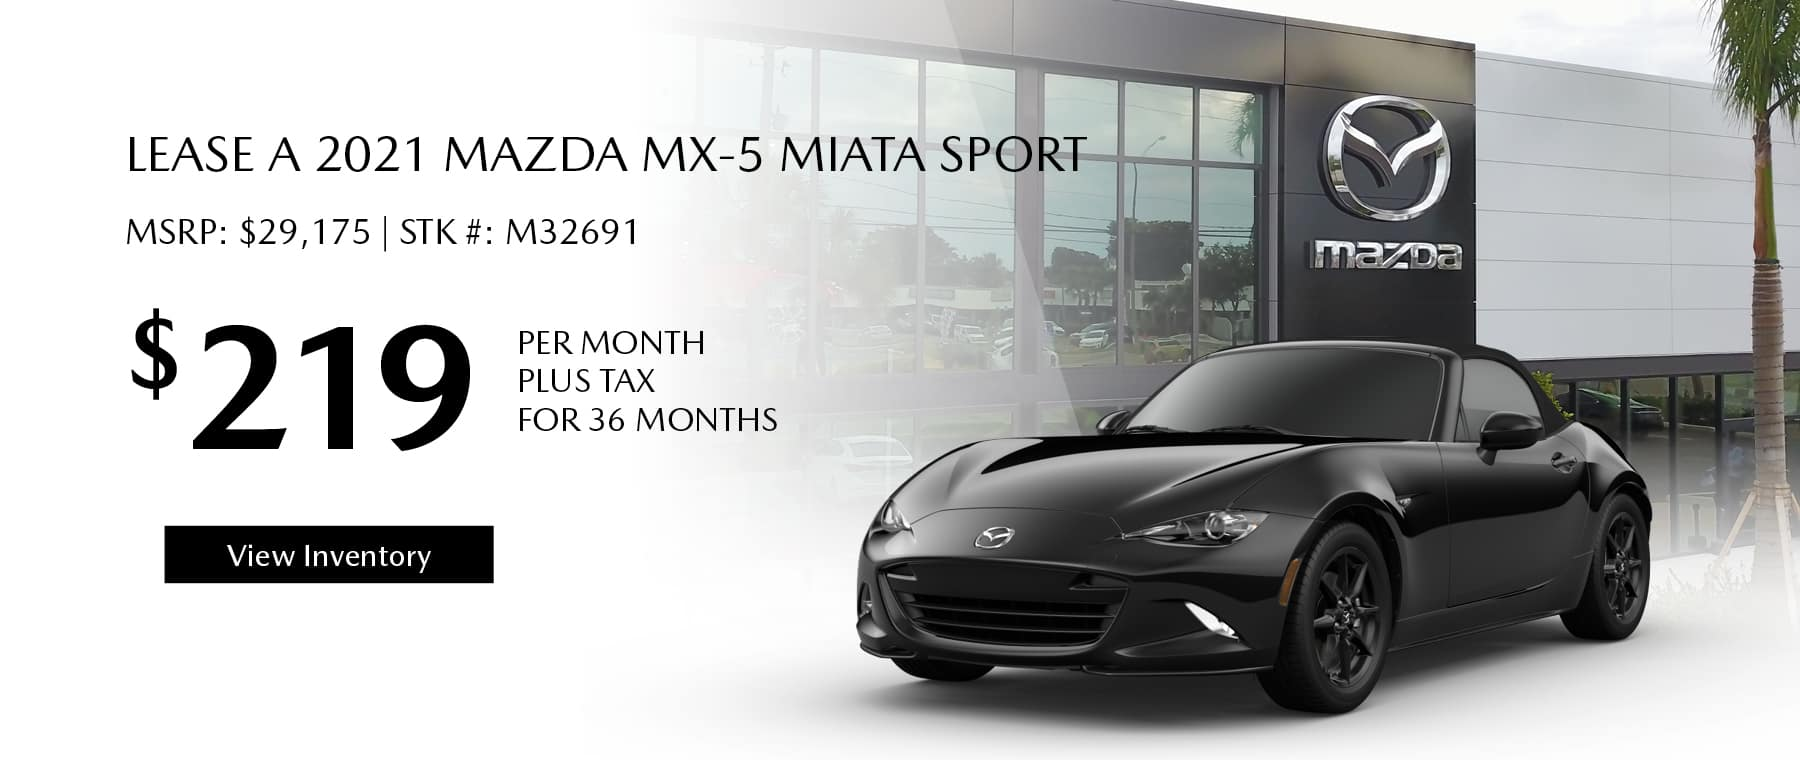 Lease the 2021 Mazda MX-5 for $219 per month, plus tax for 36 months. Click or tap here to view our inventory.